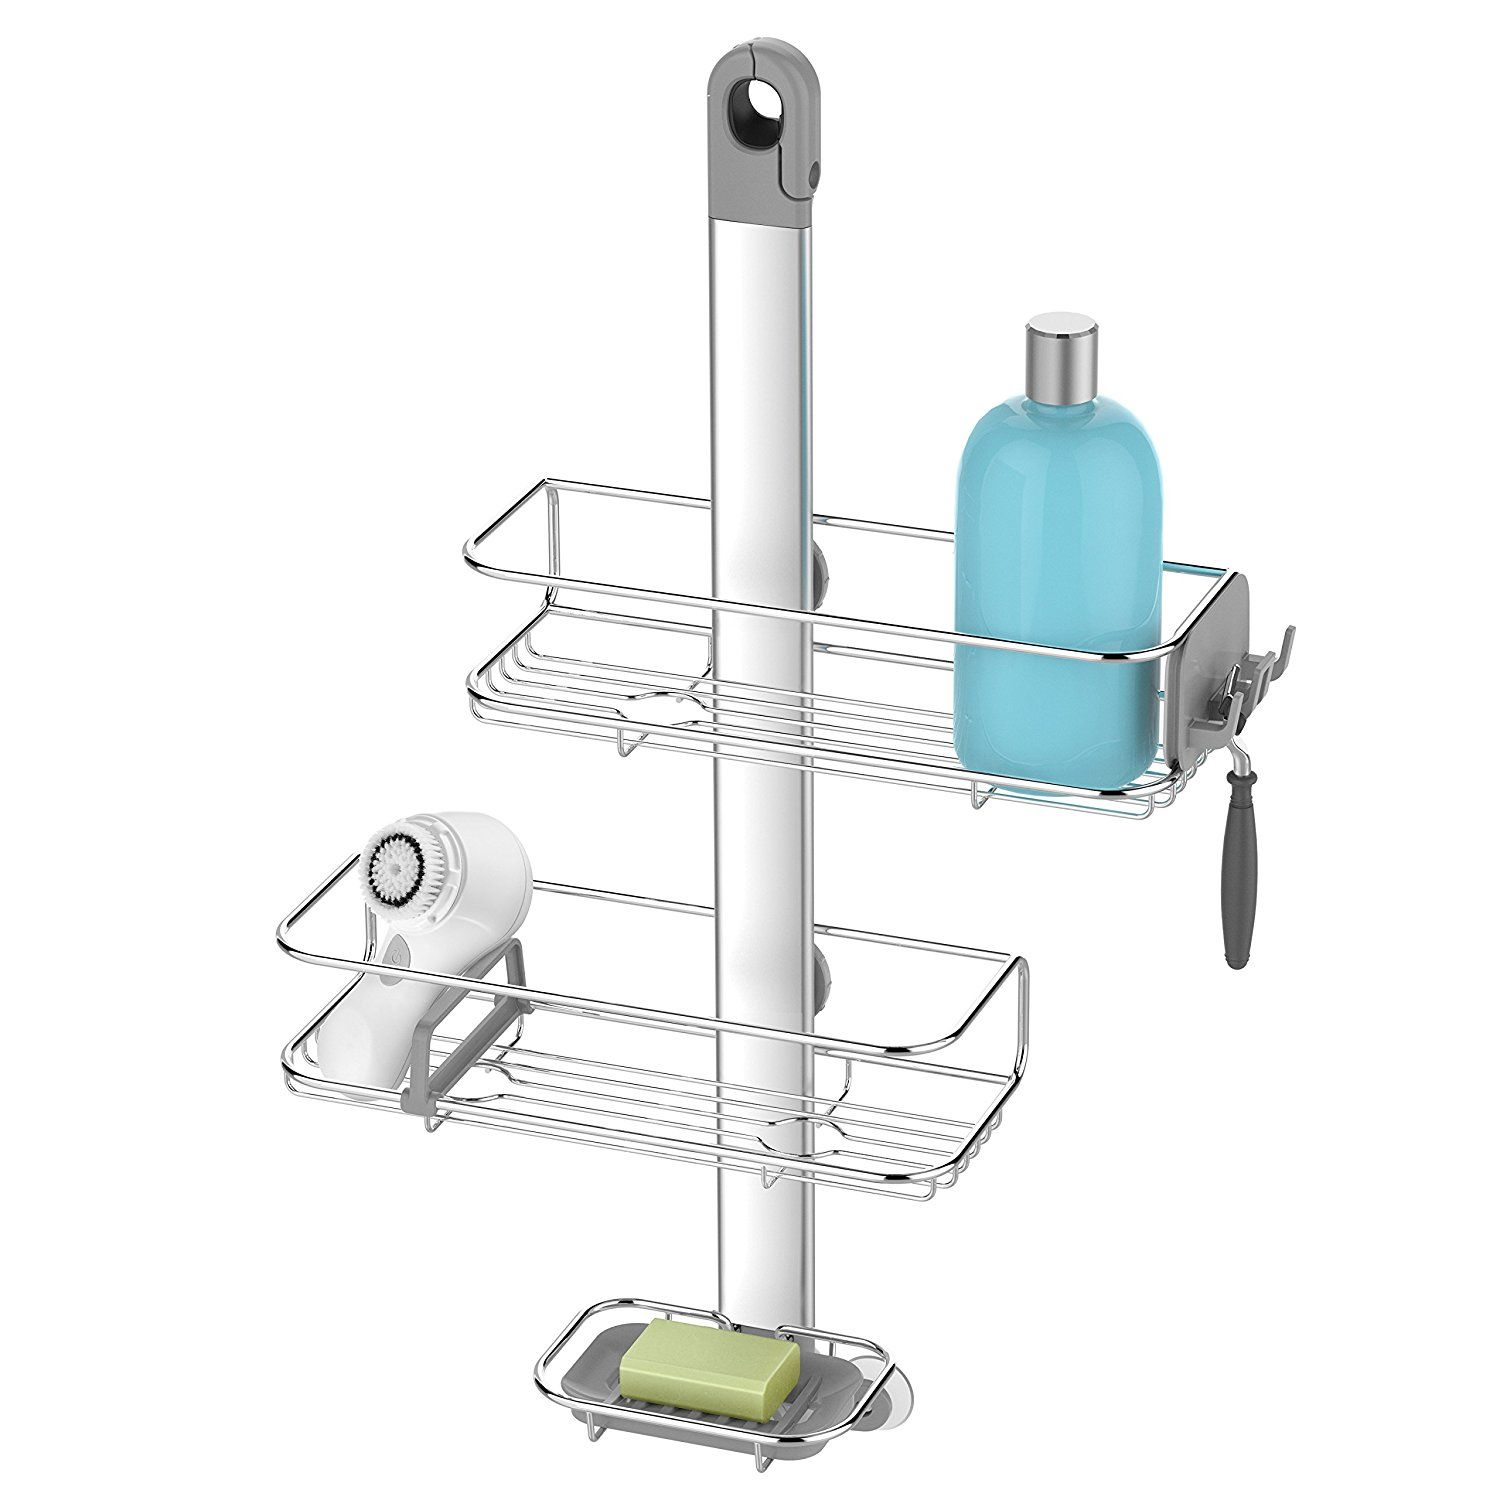 Amazon.com: simplehuman Adjustable, Hanging Shower Caddy, Stainless ...